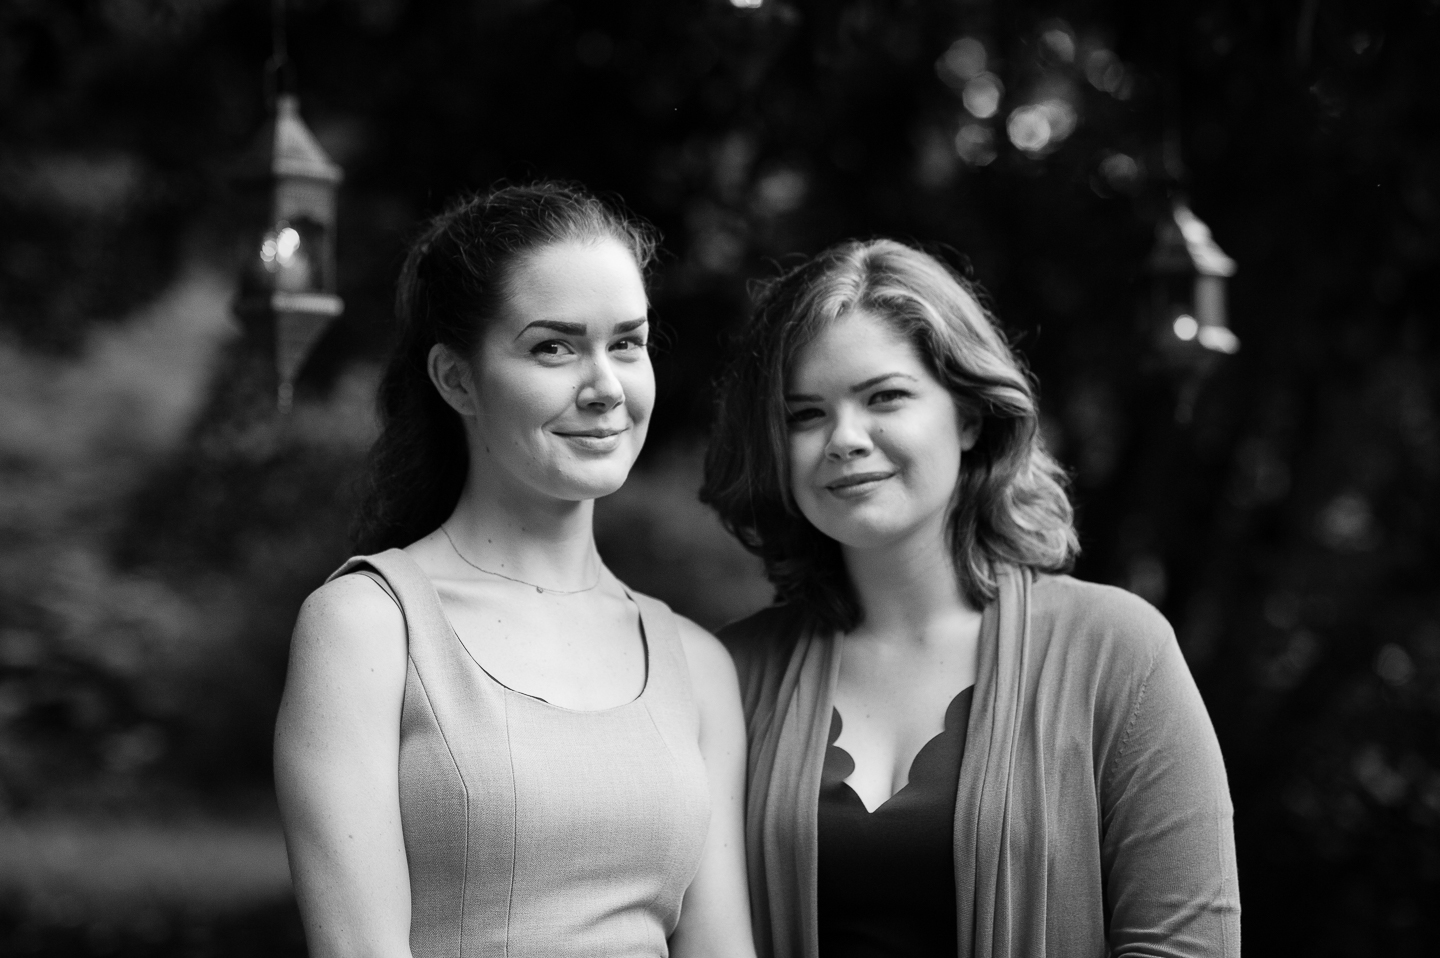 bride and her sister pose for a quick sibling portrait